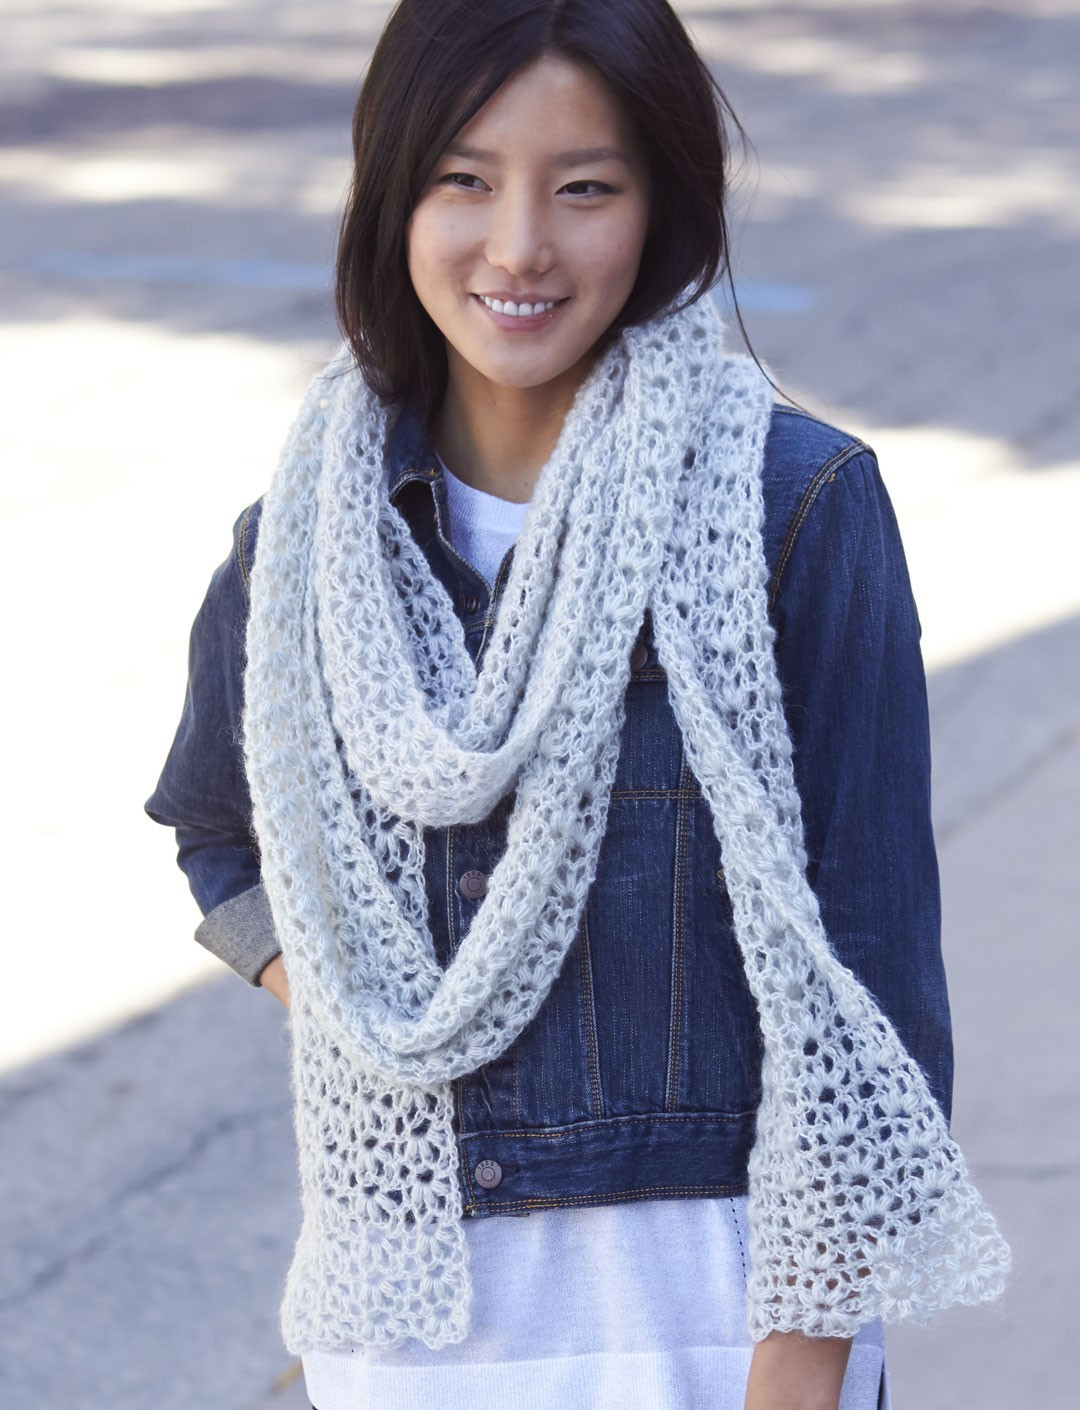 Best Of Snow Puff Scarf In Patons Lace Crochet Lace Scarf Of Incredible 41 Models Crochet Lace Scarf